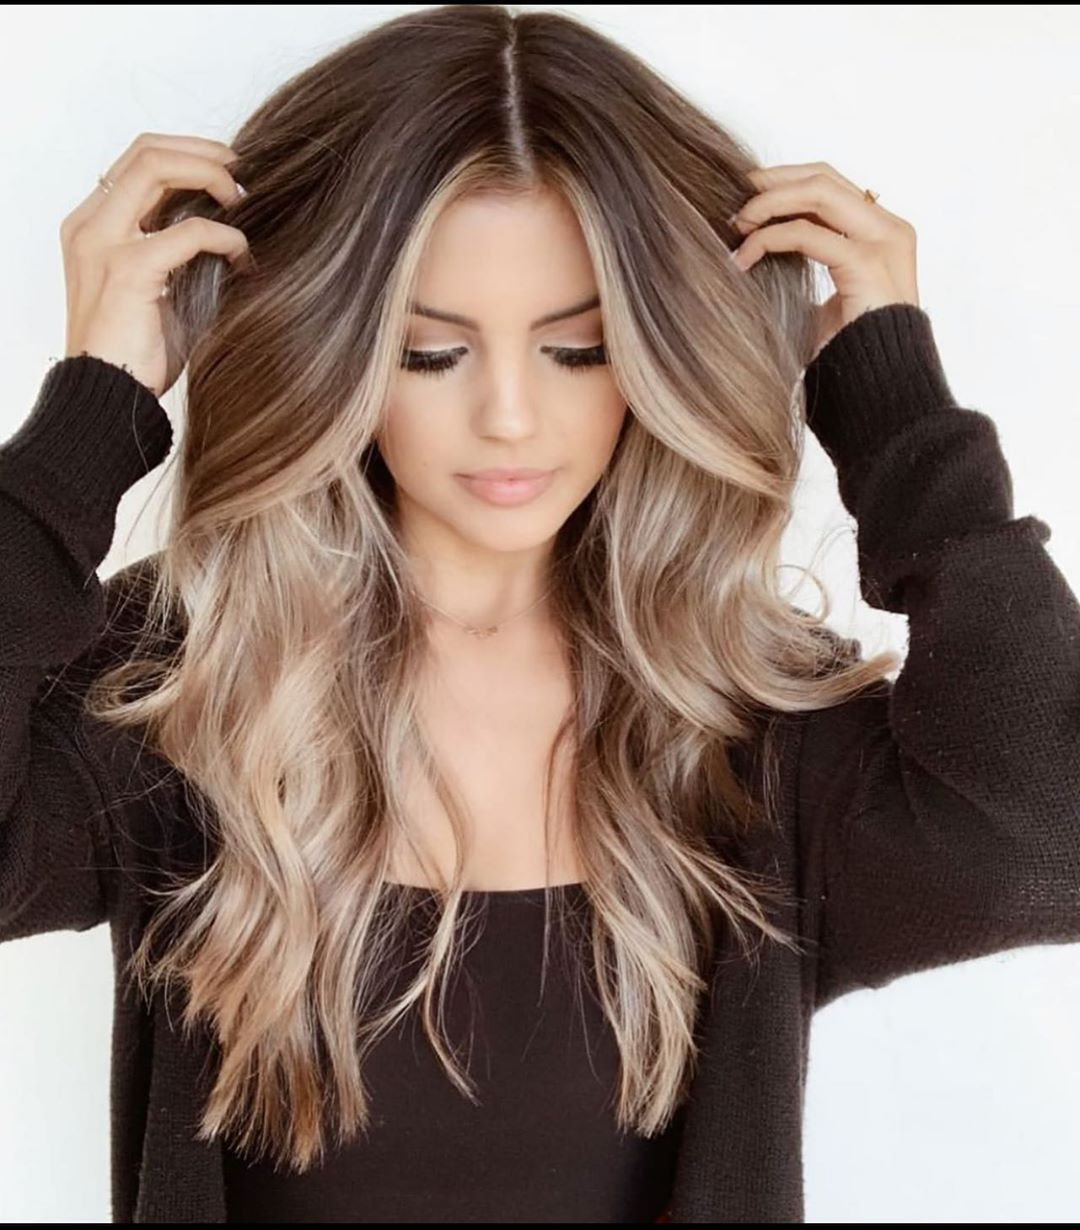 Hairstyle Catalogue On Instagram Brilliant Hair By Mane Ivy Hair Hairstyle Instahair E In 2020 Hair Styles Long Hair Styles Hair Color Balayage